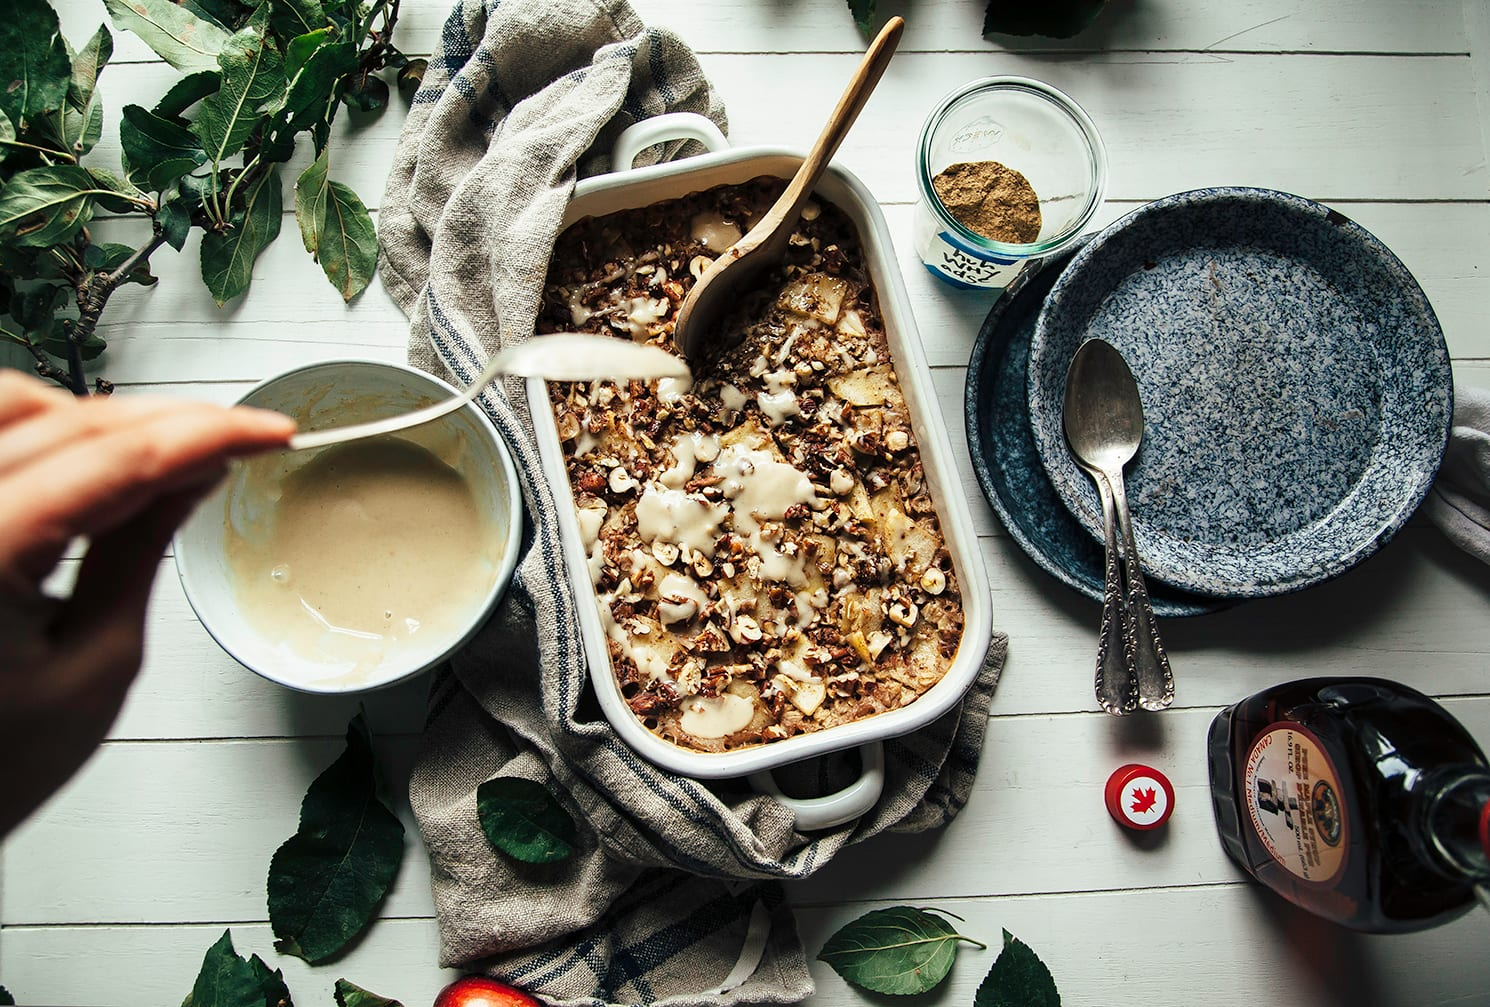 A hand is drizzling a creamy sauce over a dish of baked oatmeal that is topped with cooked apples and nuts.